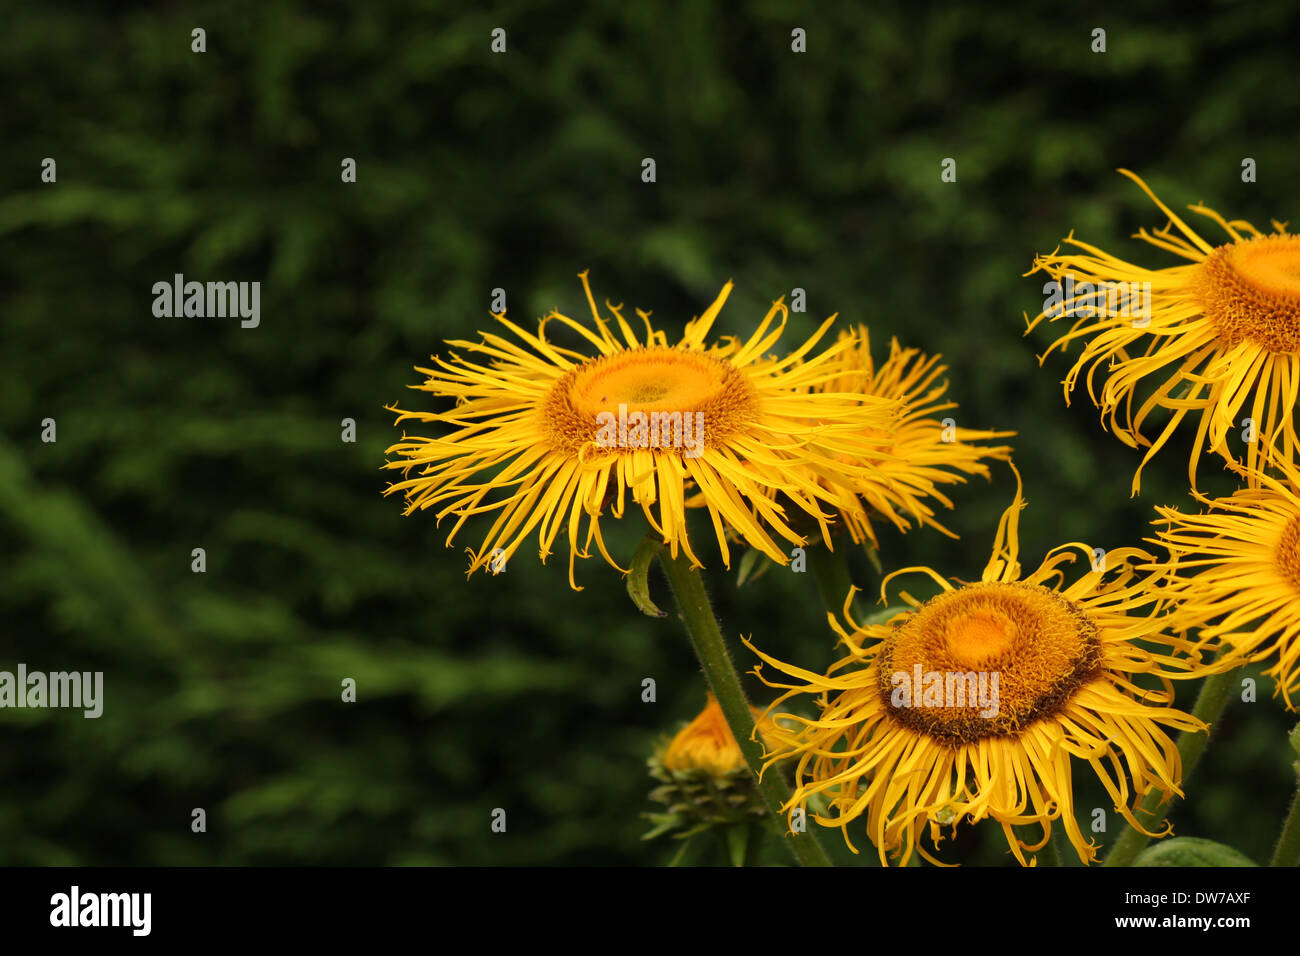 A group of yellow Inula flowers in front of a dark conifer hedge - Stock Image